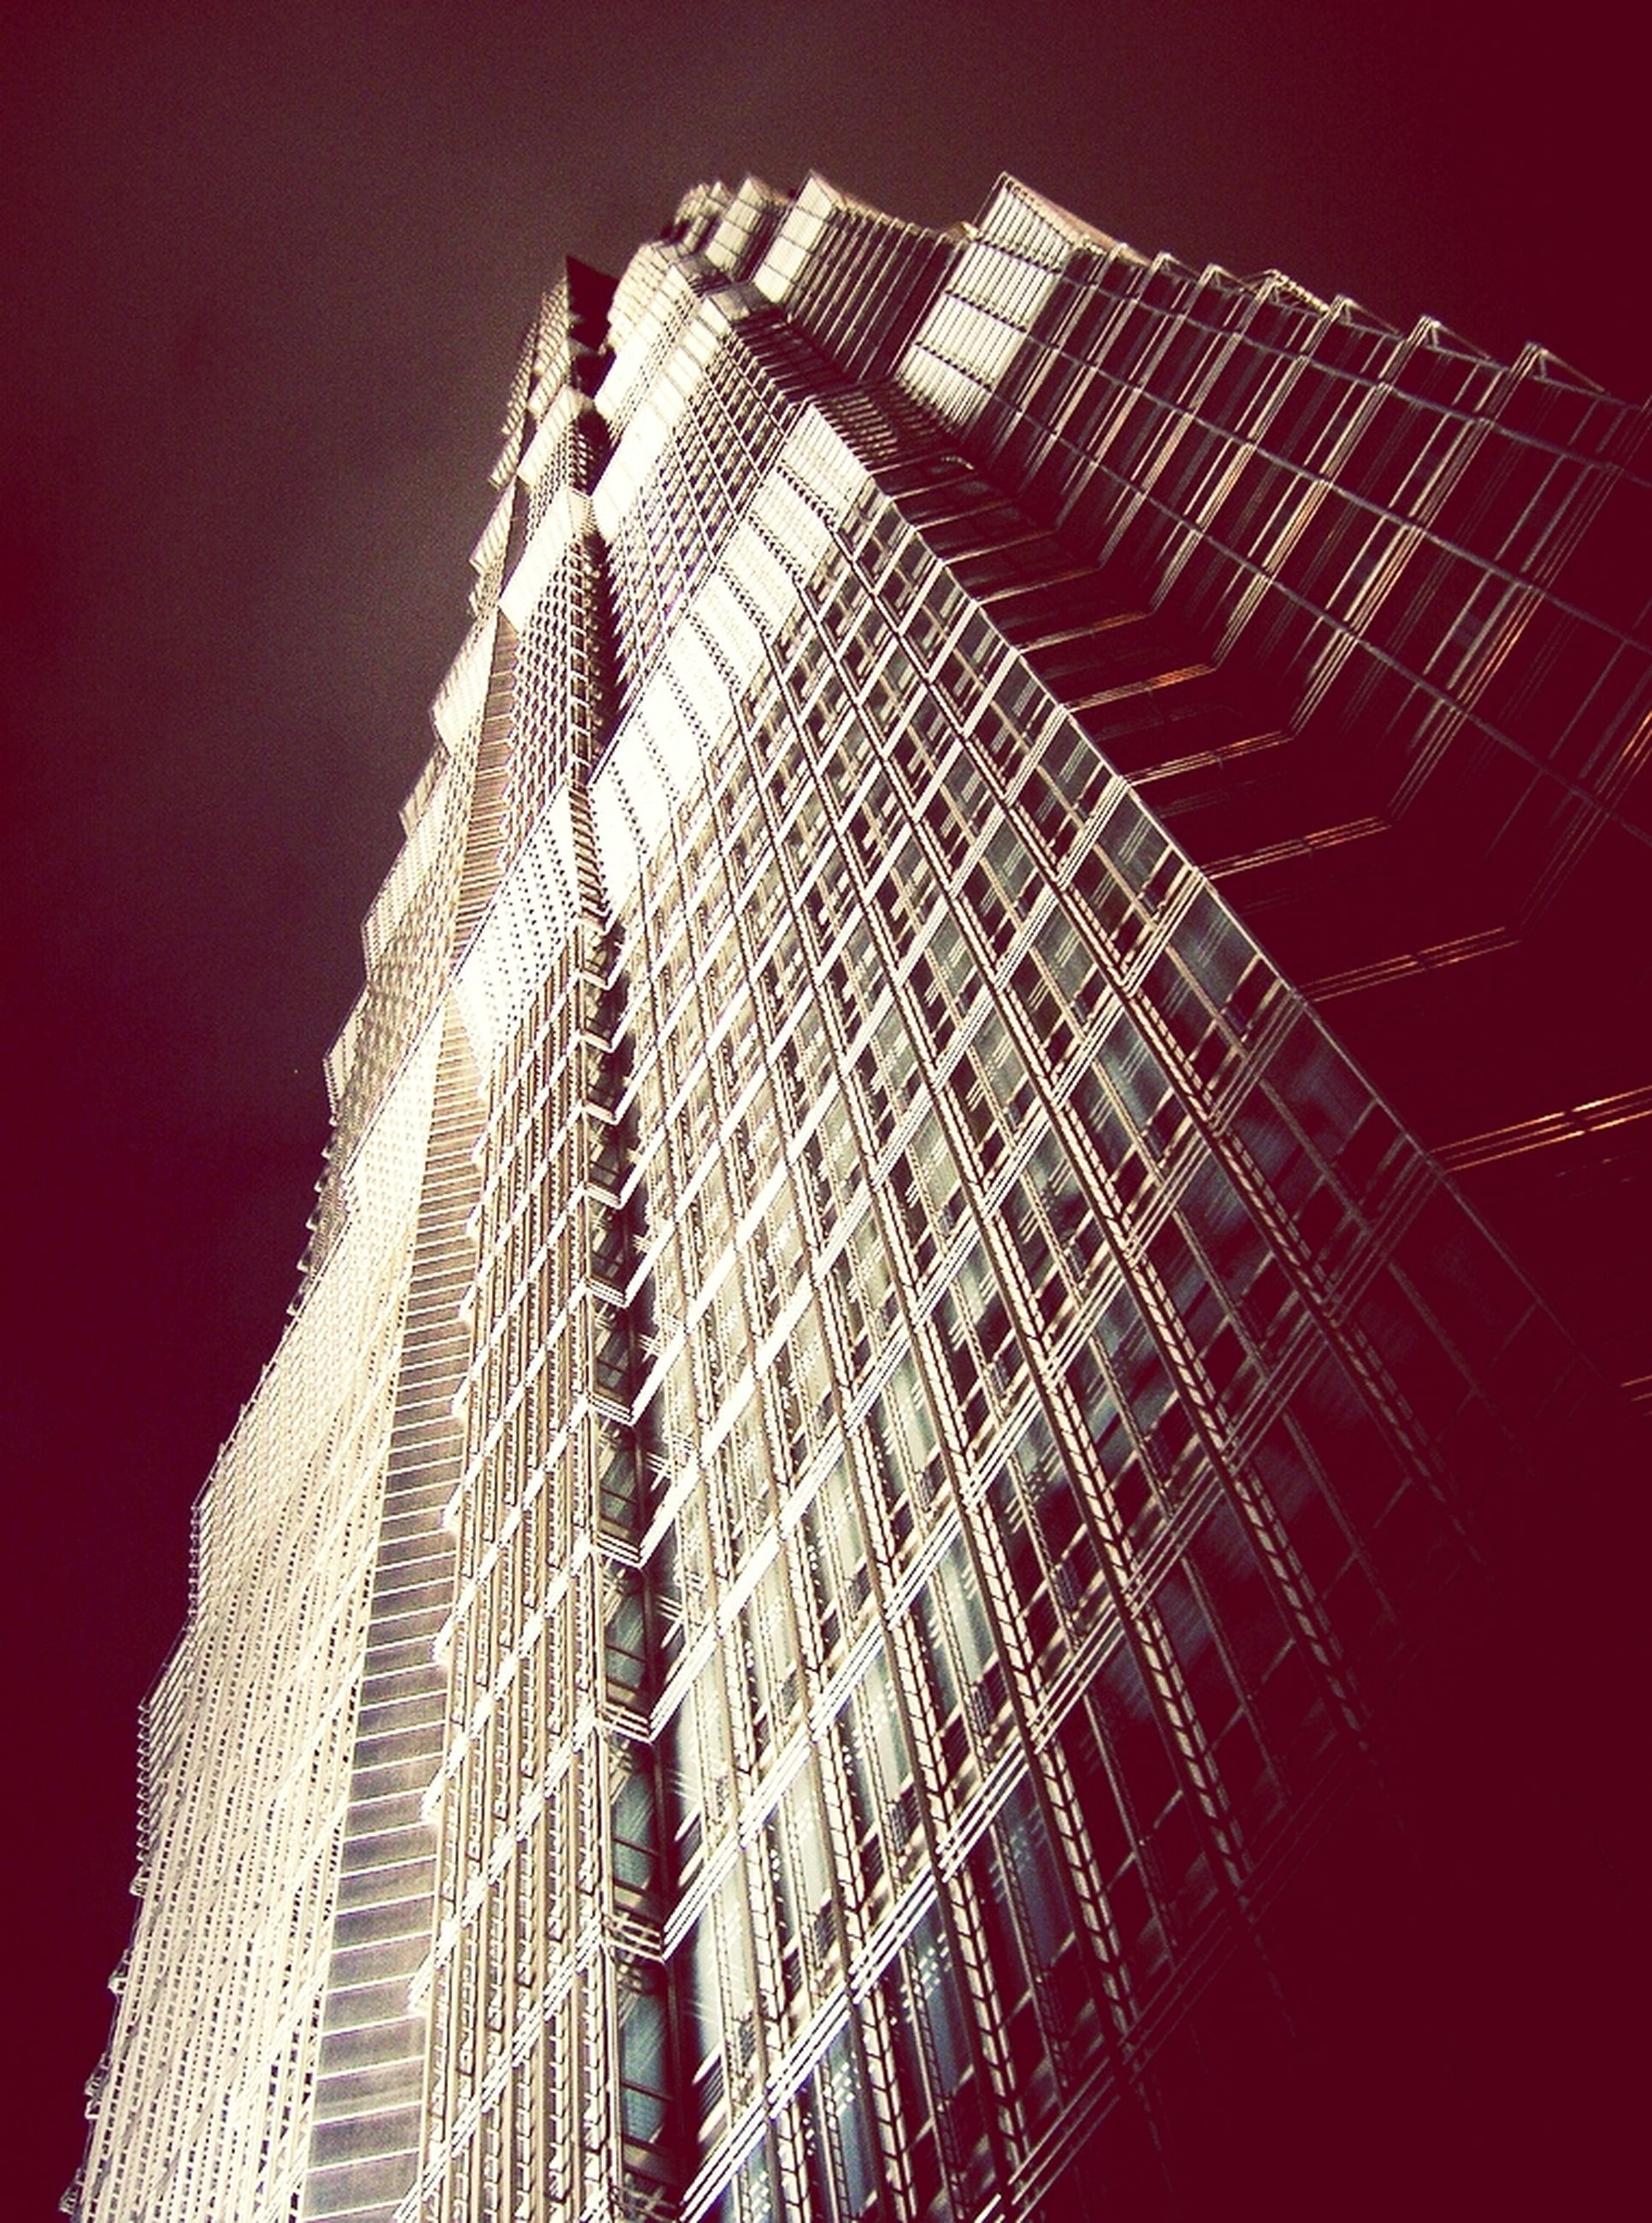 building exterior, architecture, built structure, low angle view, skyscraper, city, outdoors, no people, pattern, night, clear sky, modern, tall - high, development, building, winter, weather, sky, tall